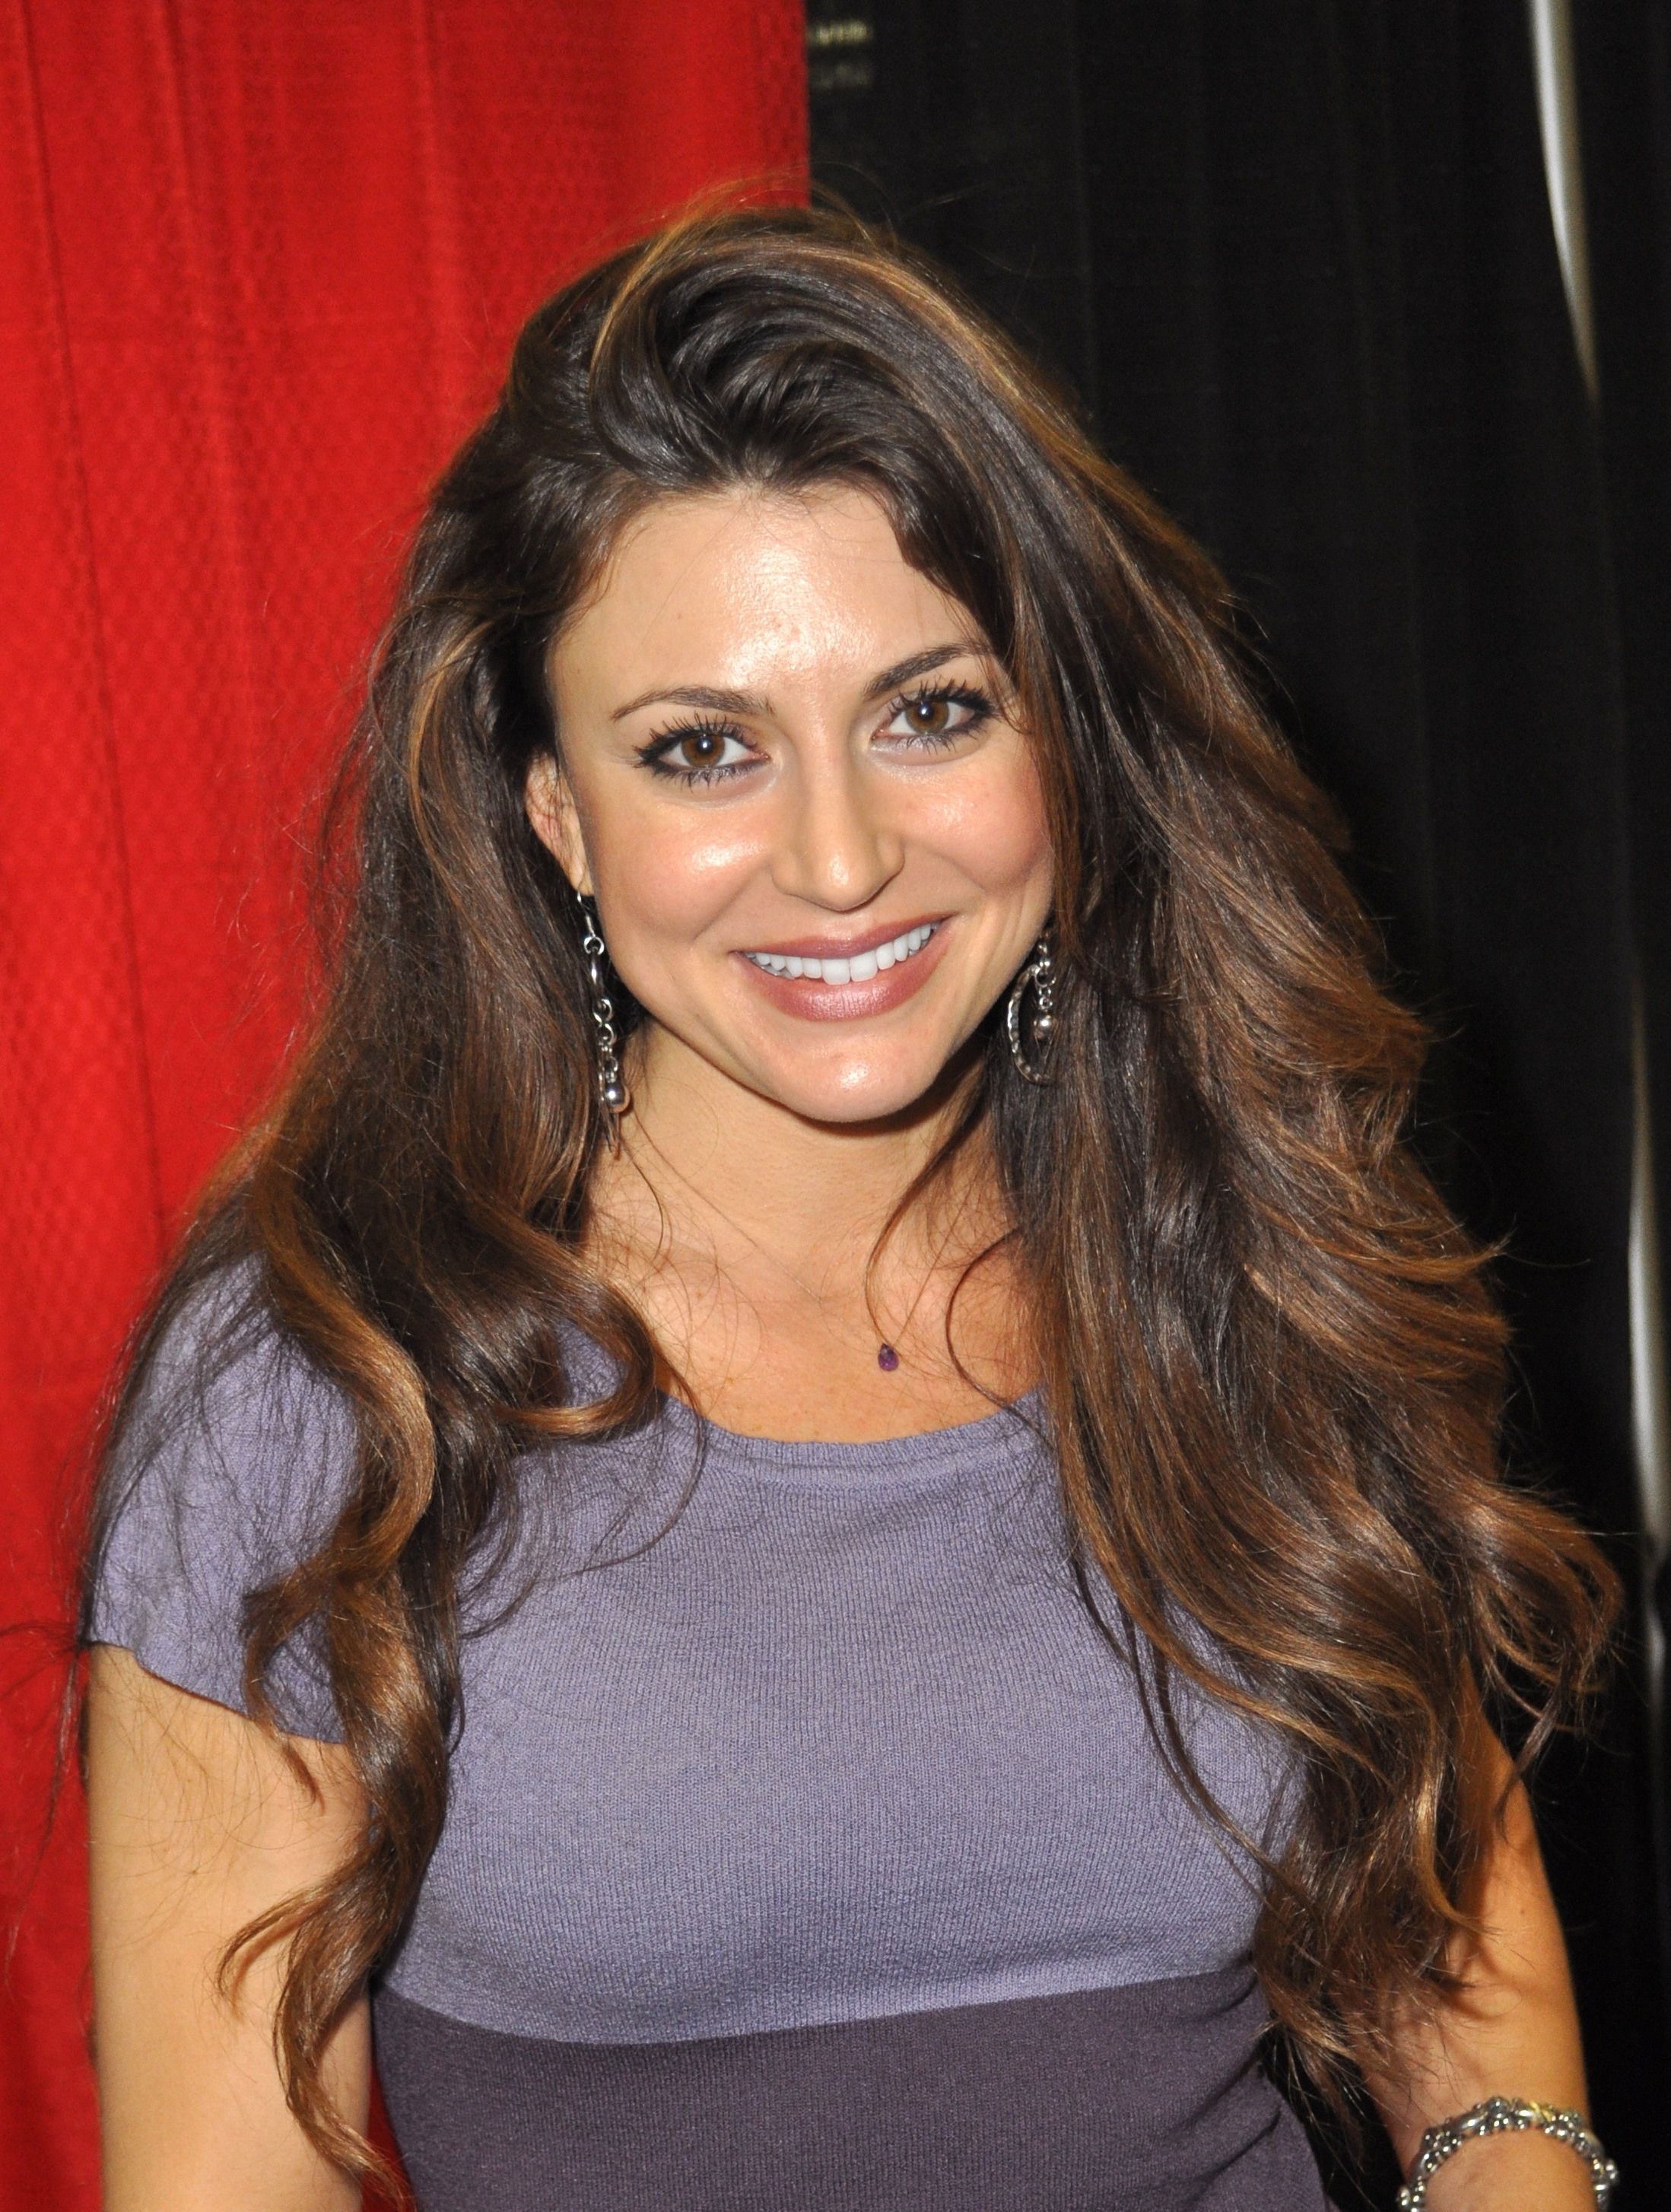 cerina vincent getty imagescerina vincent getty images, cerina vincent as maya, cerina vincent, cerina vincent instagram, cerina vincent power rangers, cerina vincent facebook, cerina vincent fan site, cerina vincent imdb, cerina vincent twitter, cerina vincent net worth, cerina vincent now